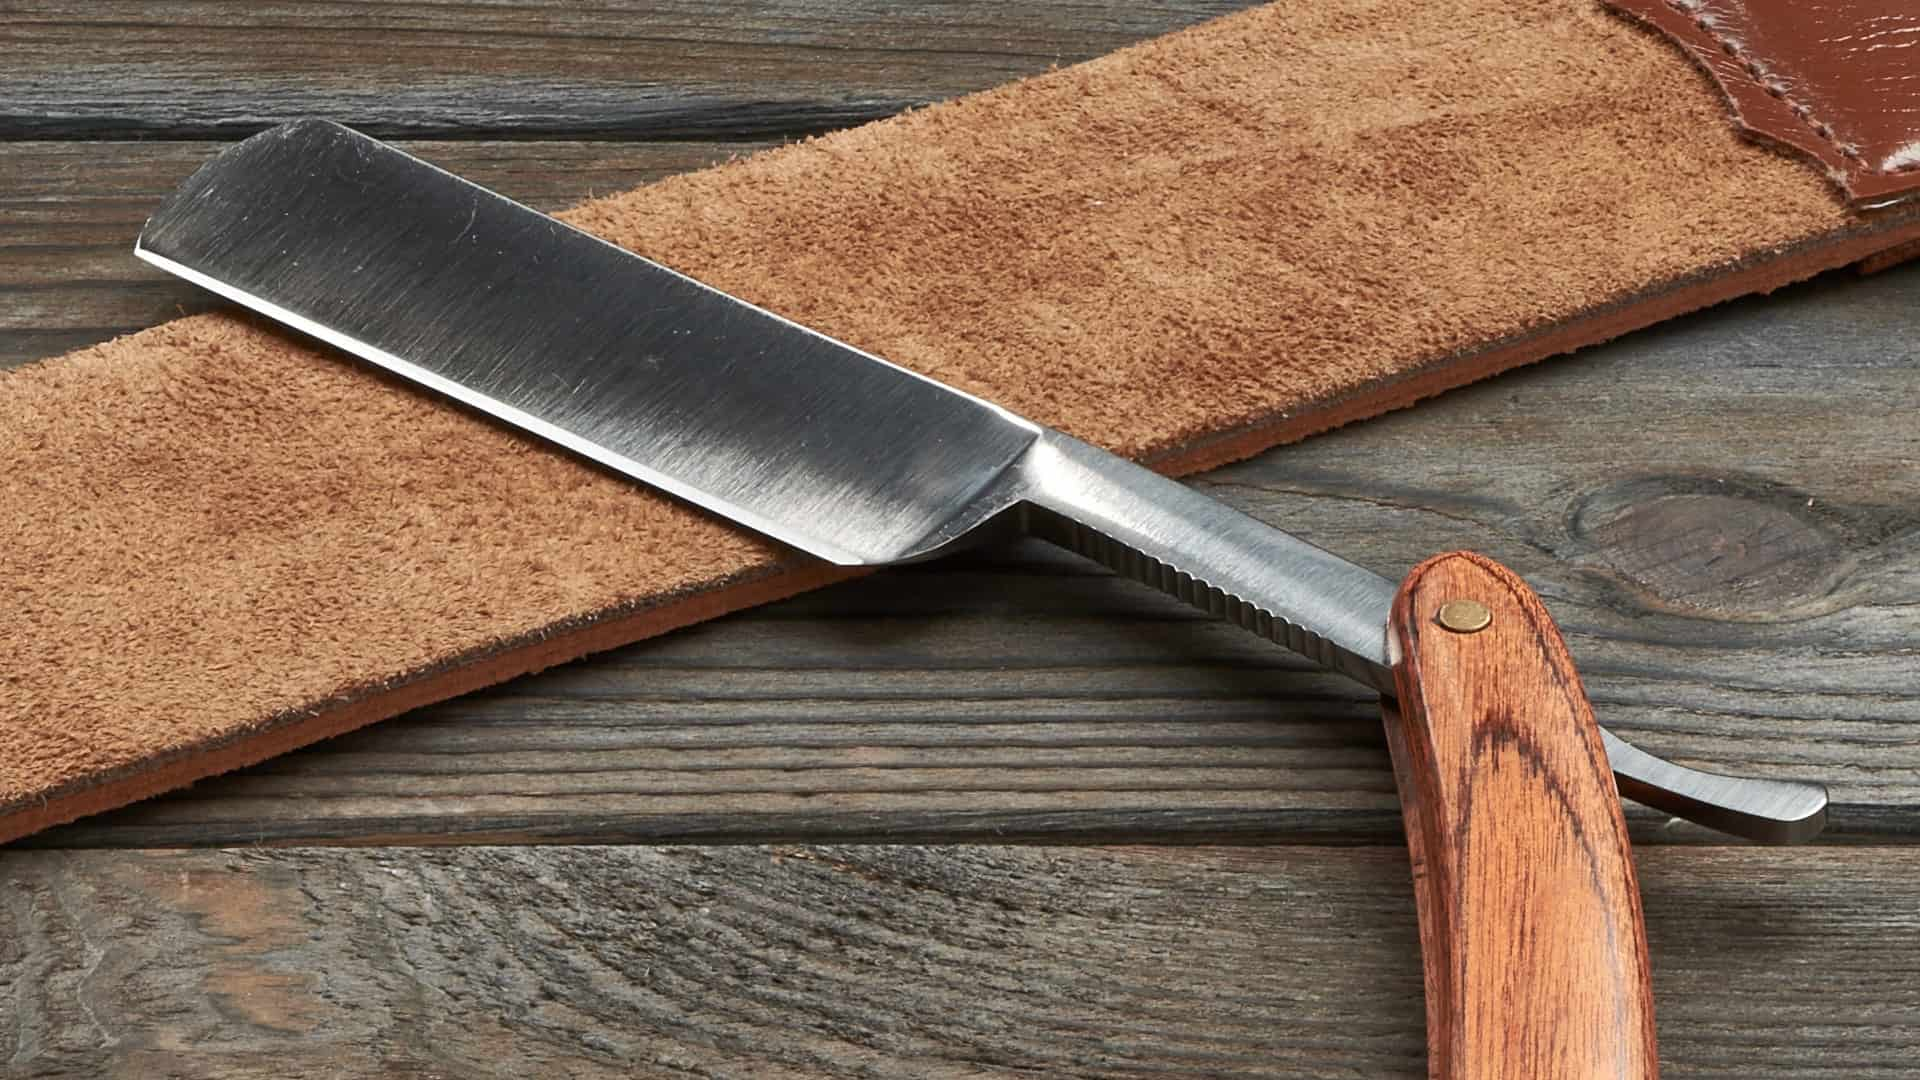 Best Straight Razor 2020: Shopping Guide & Review